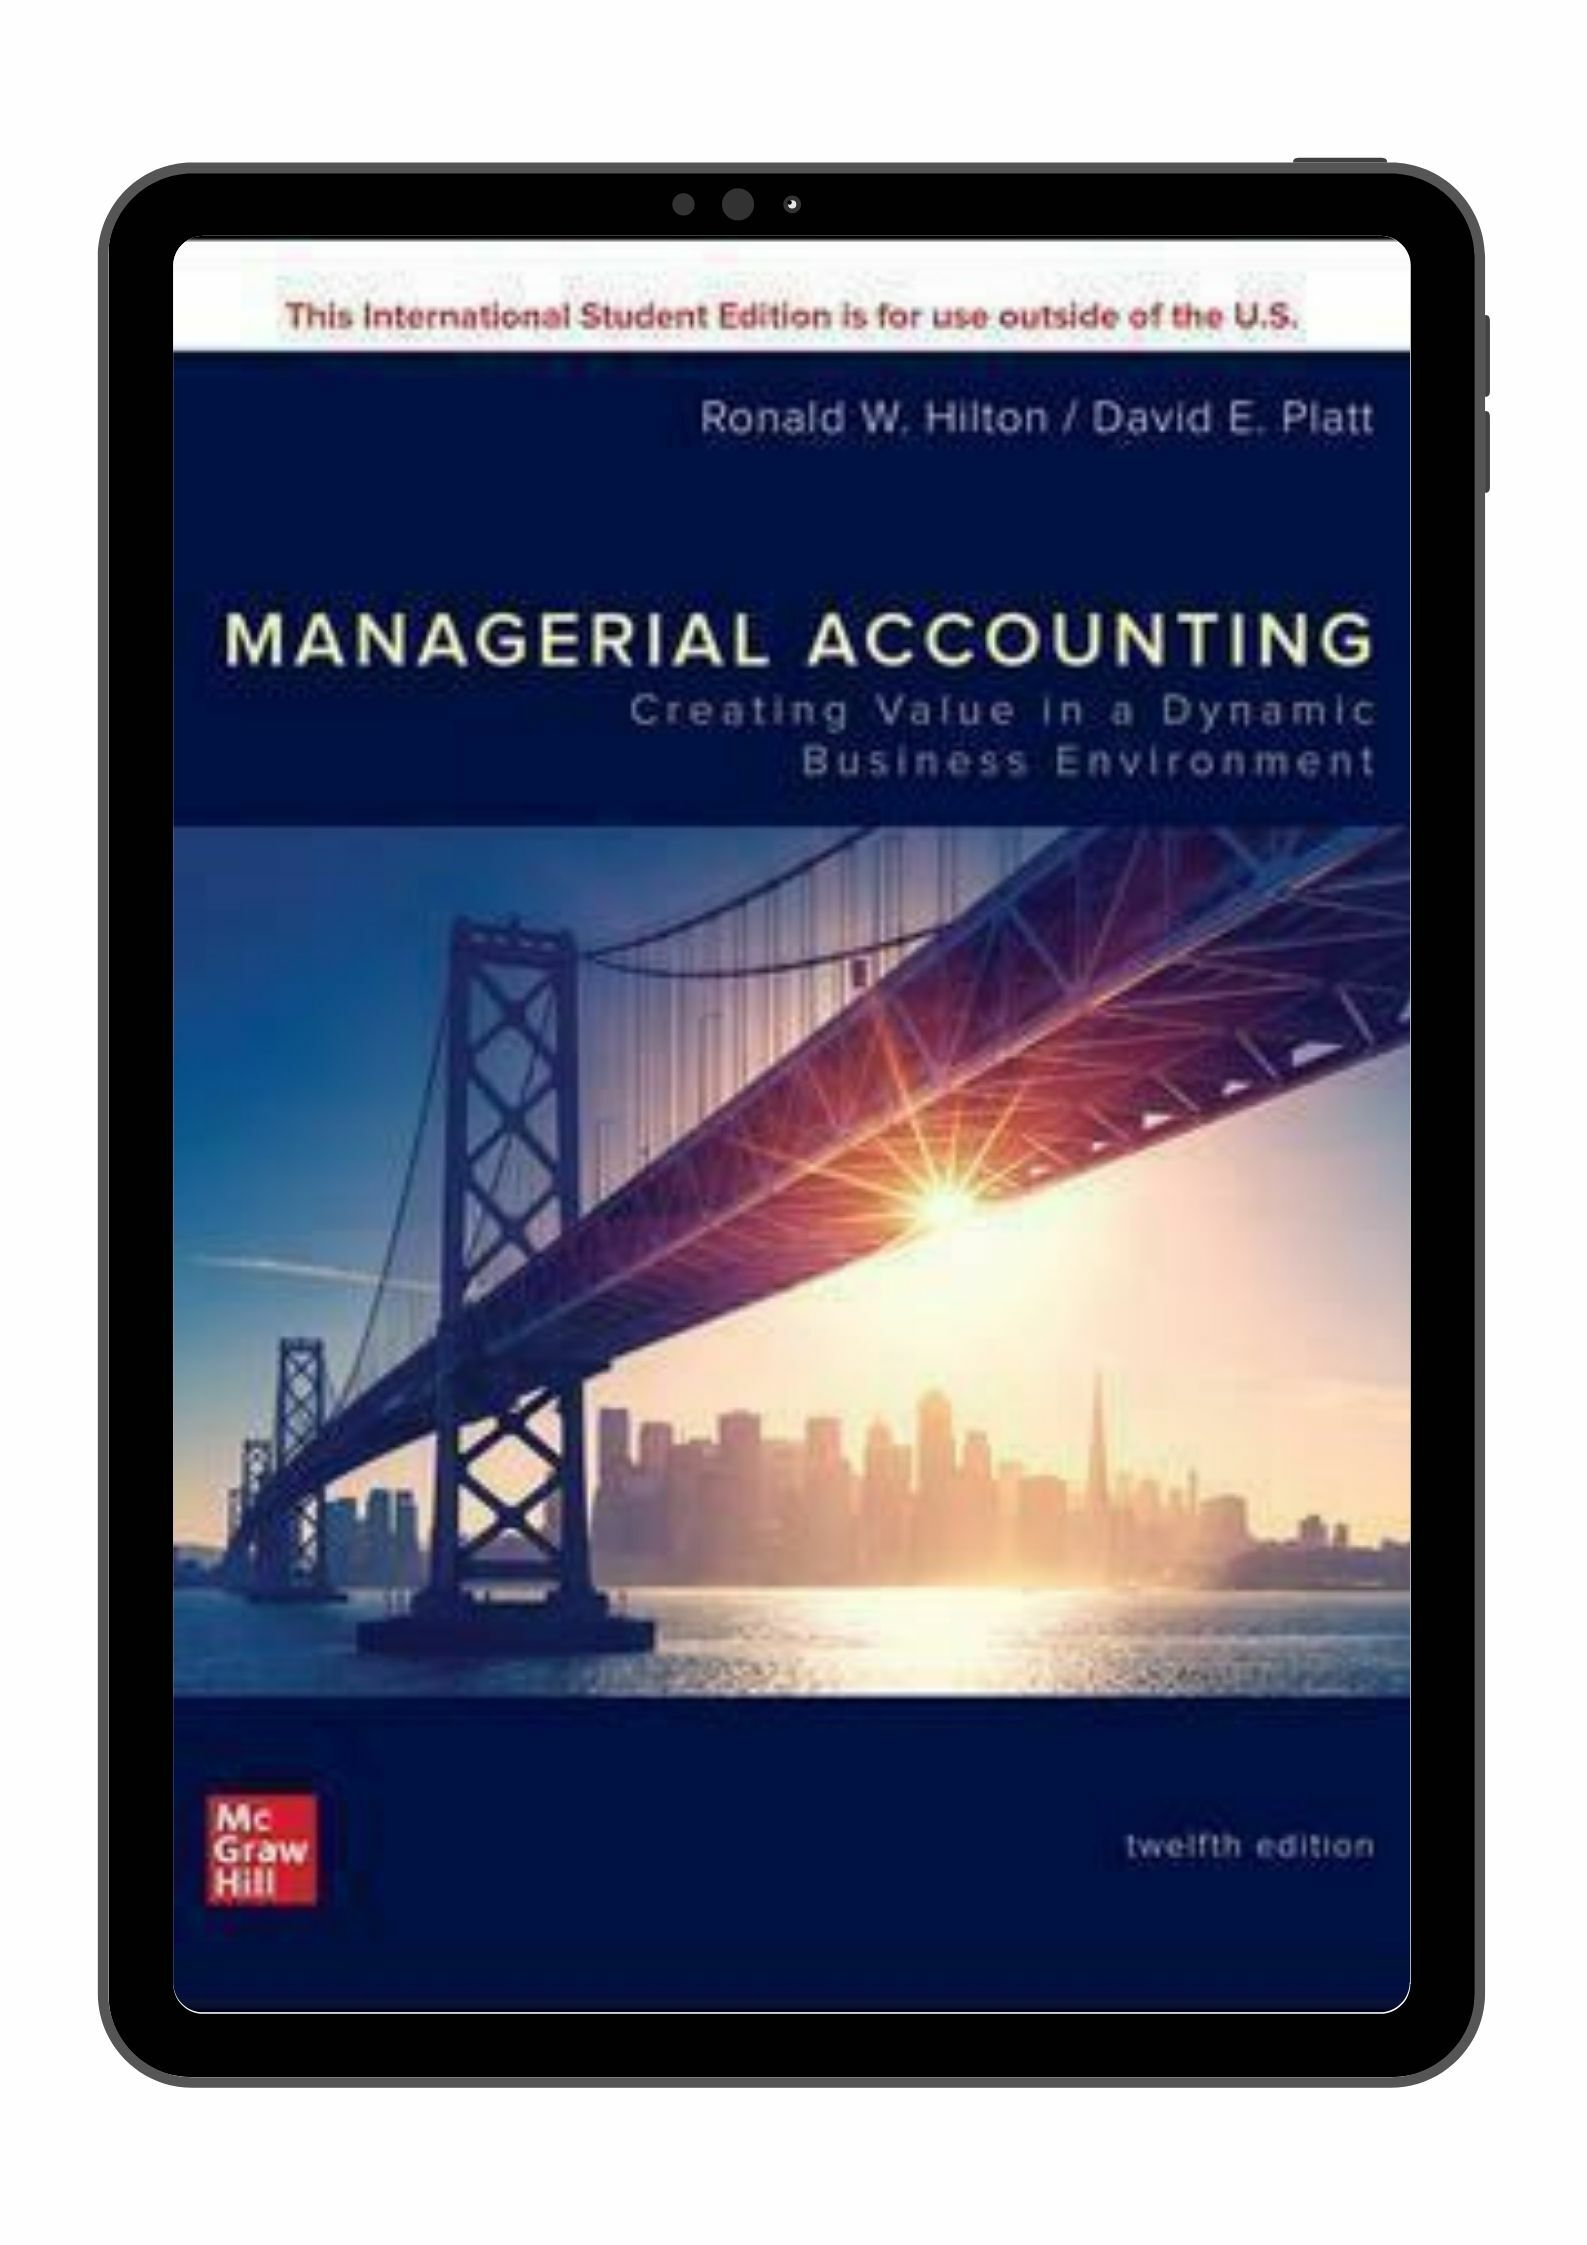 (Digital) Managerial Accounting 12E By Ronald Hilton